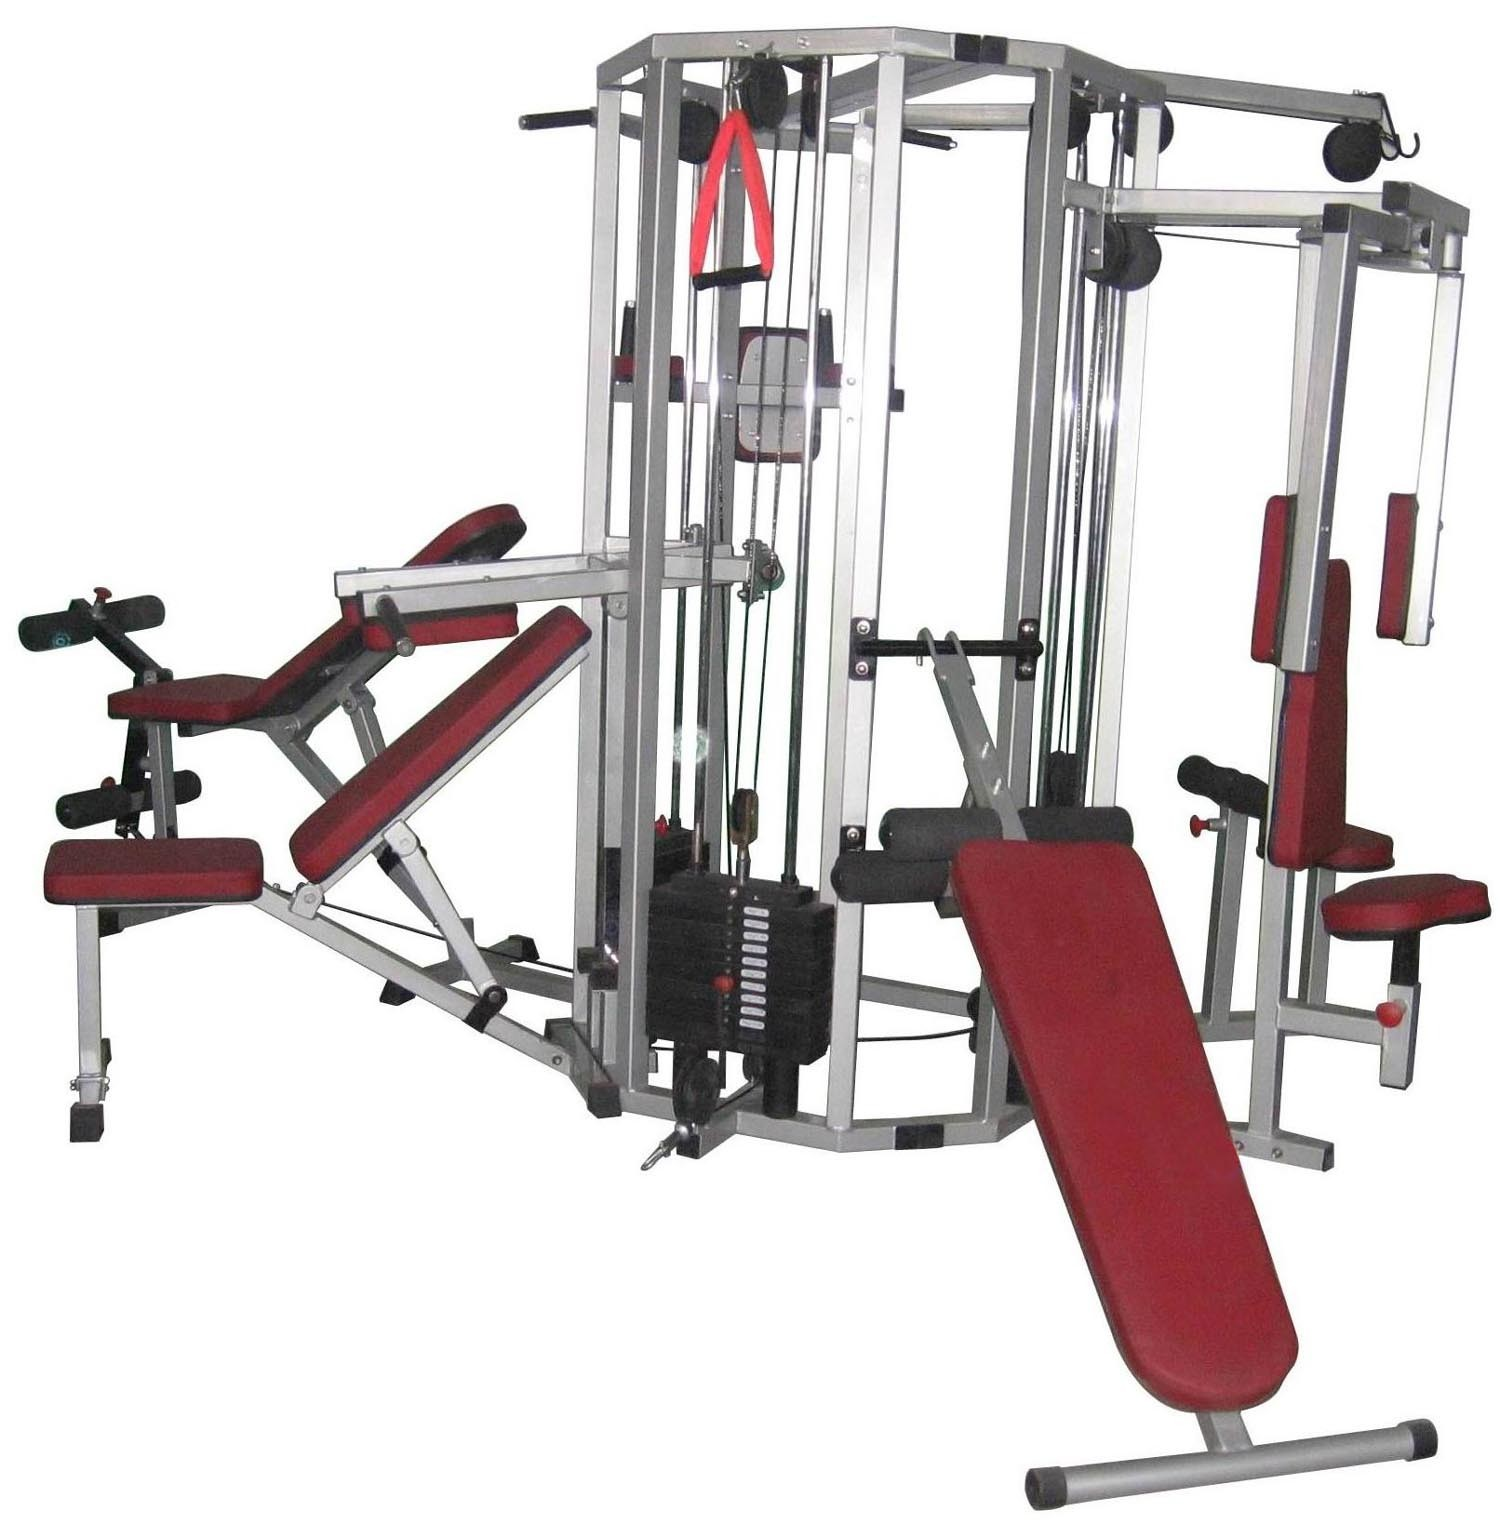 Home Exercise Equipment Price: Top Fitness Equipment For Home Exercise, Elliptical